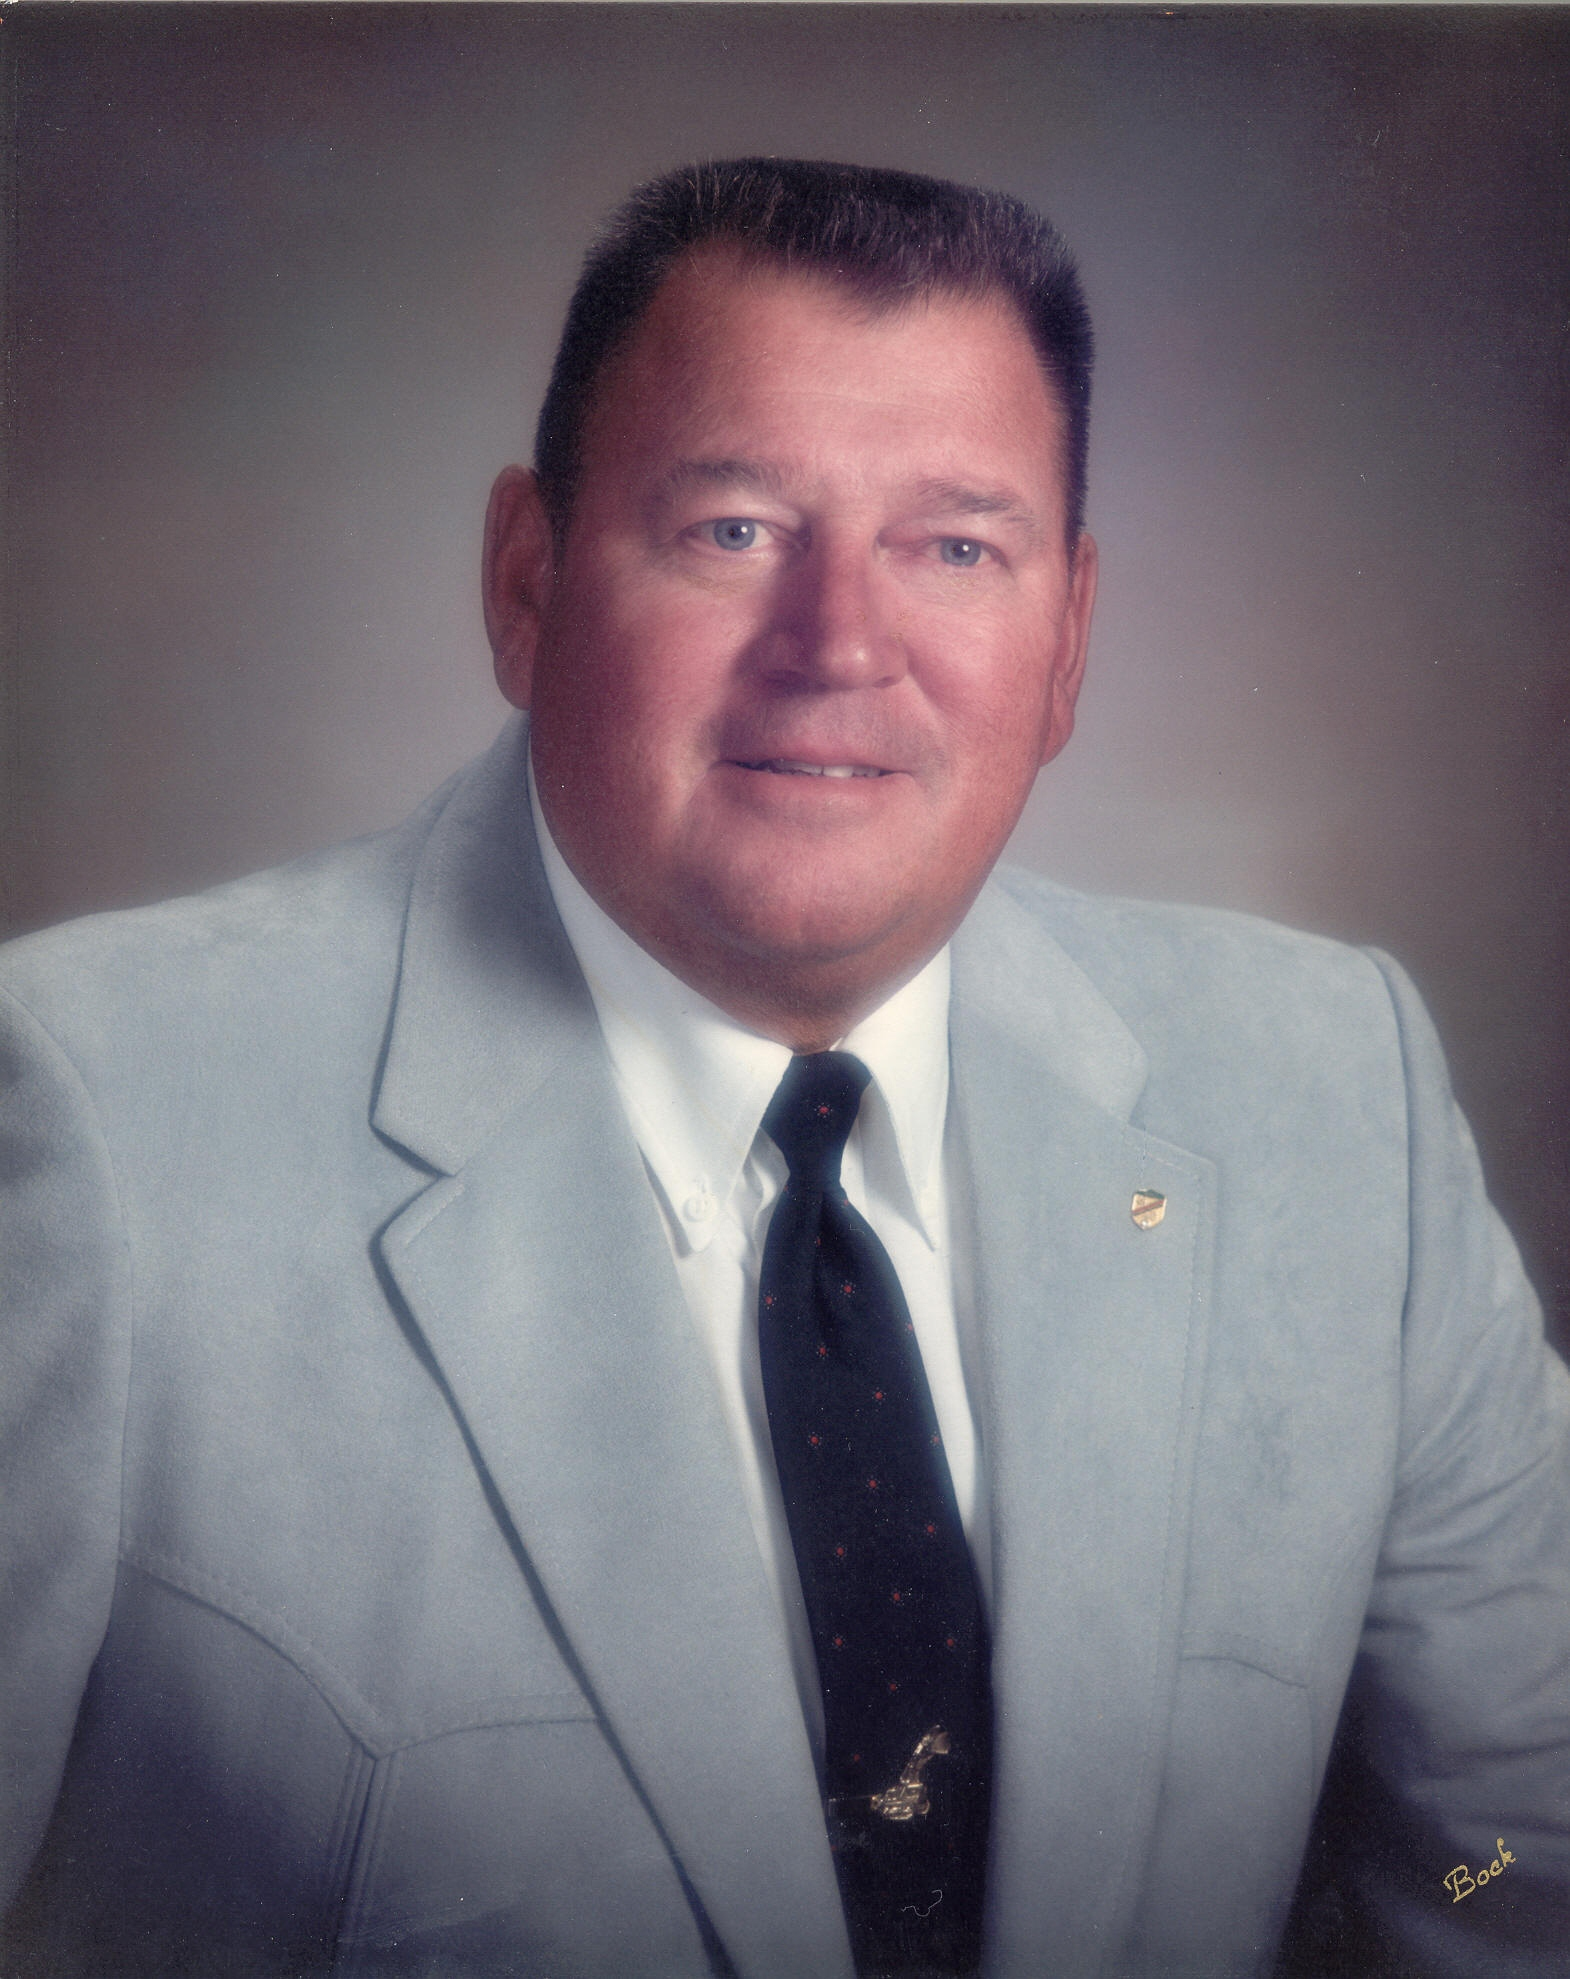 Russell R. Chier